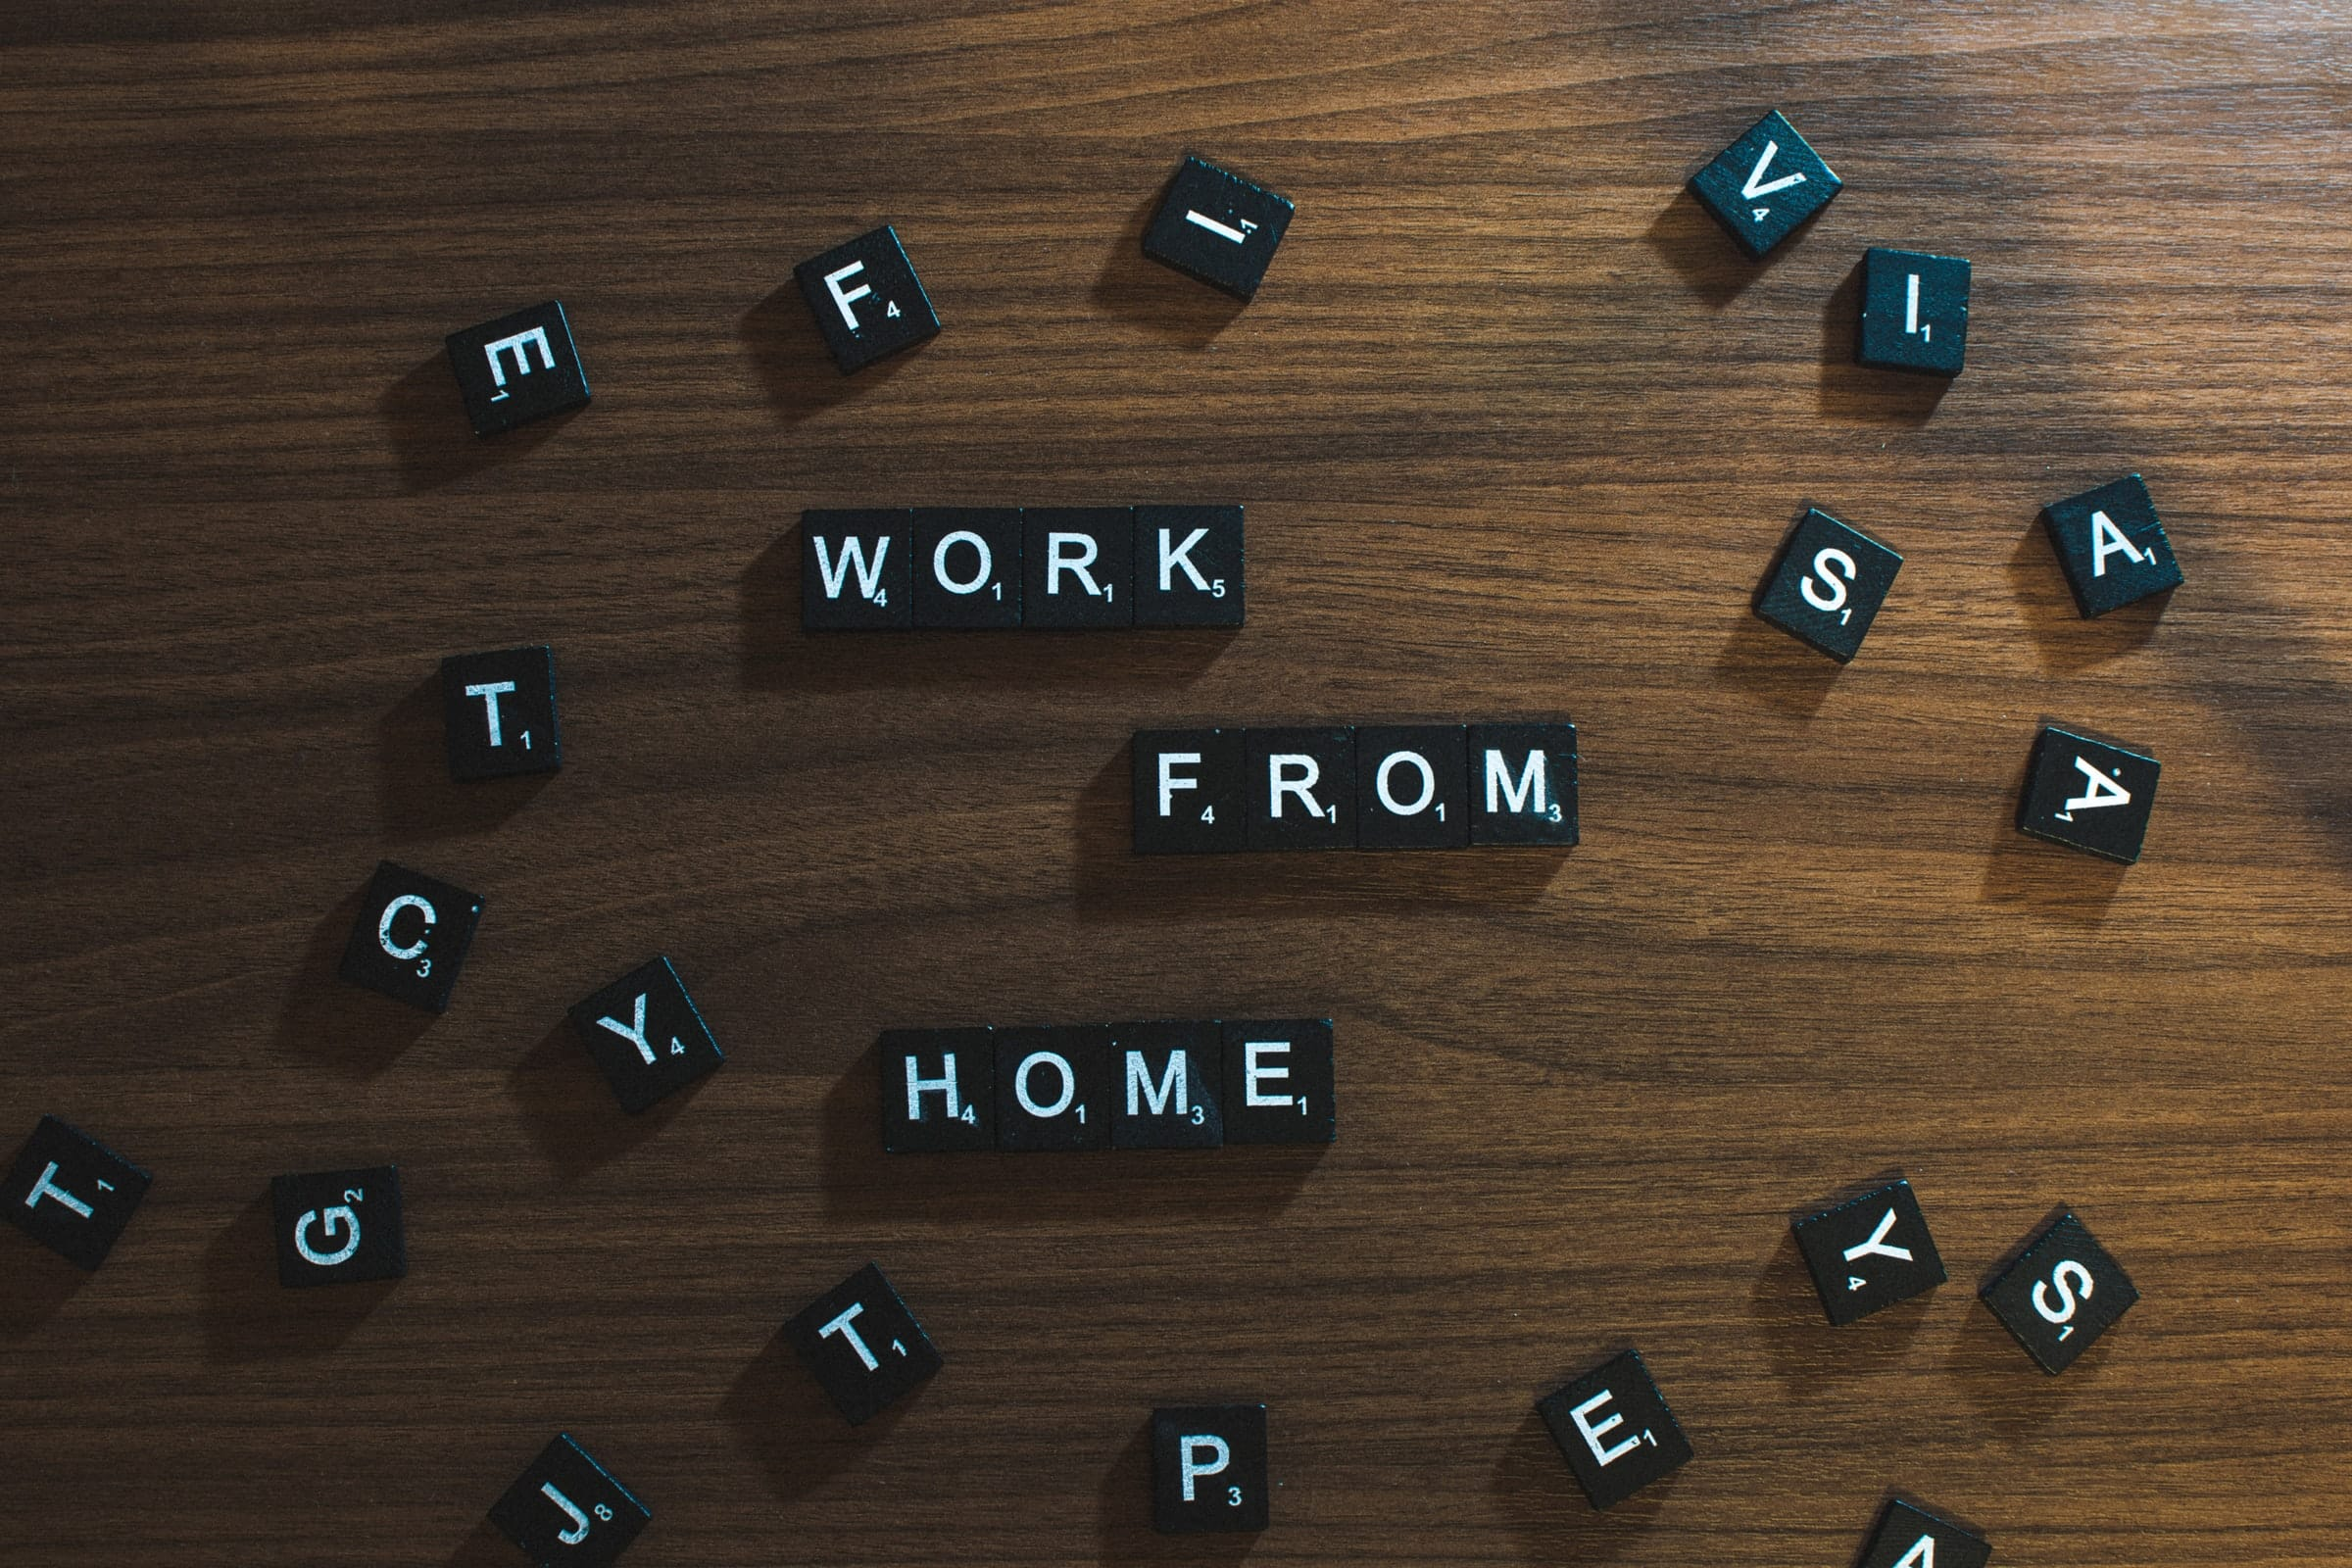 Tech firms embrace WFH 2.0 as delta variant drives COVID-19 cases across the world